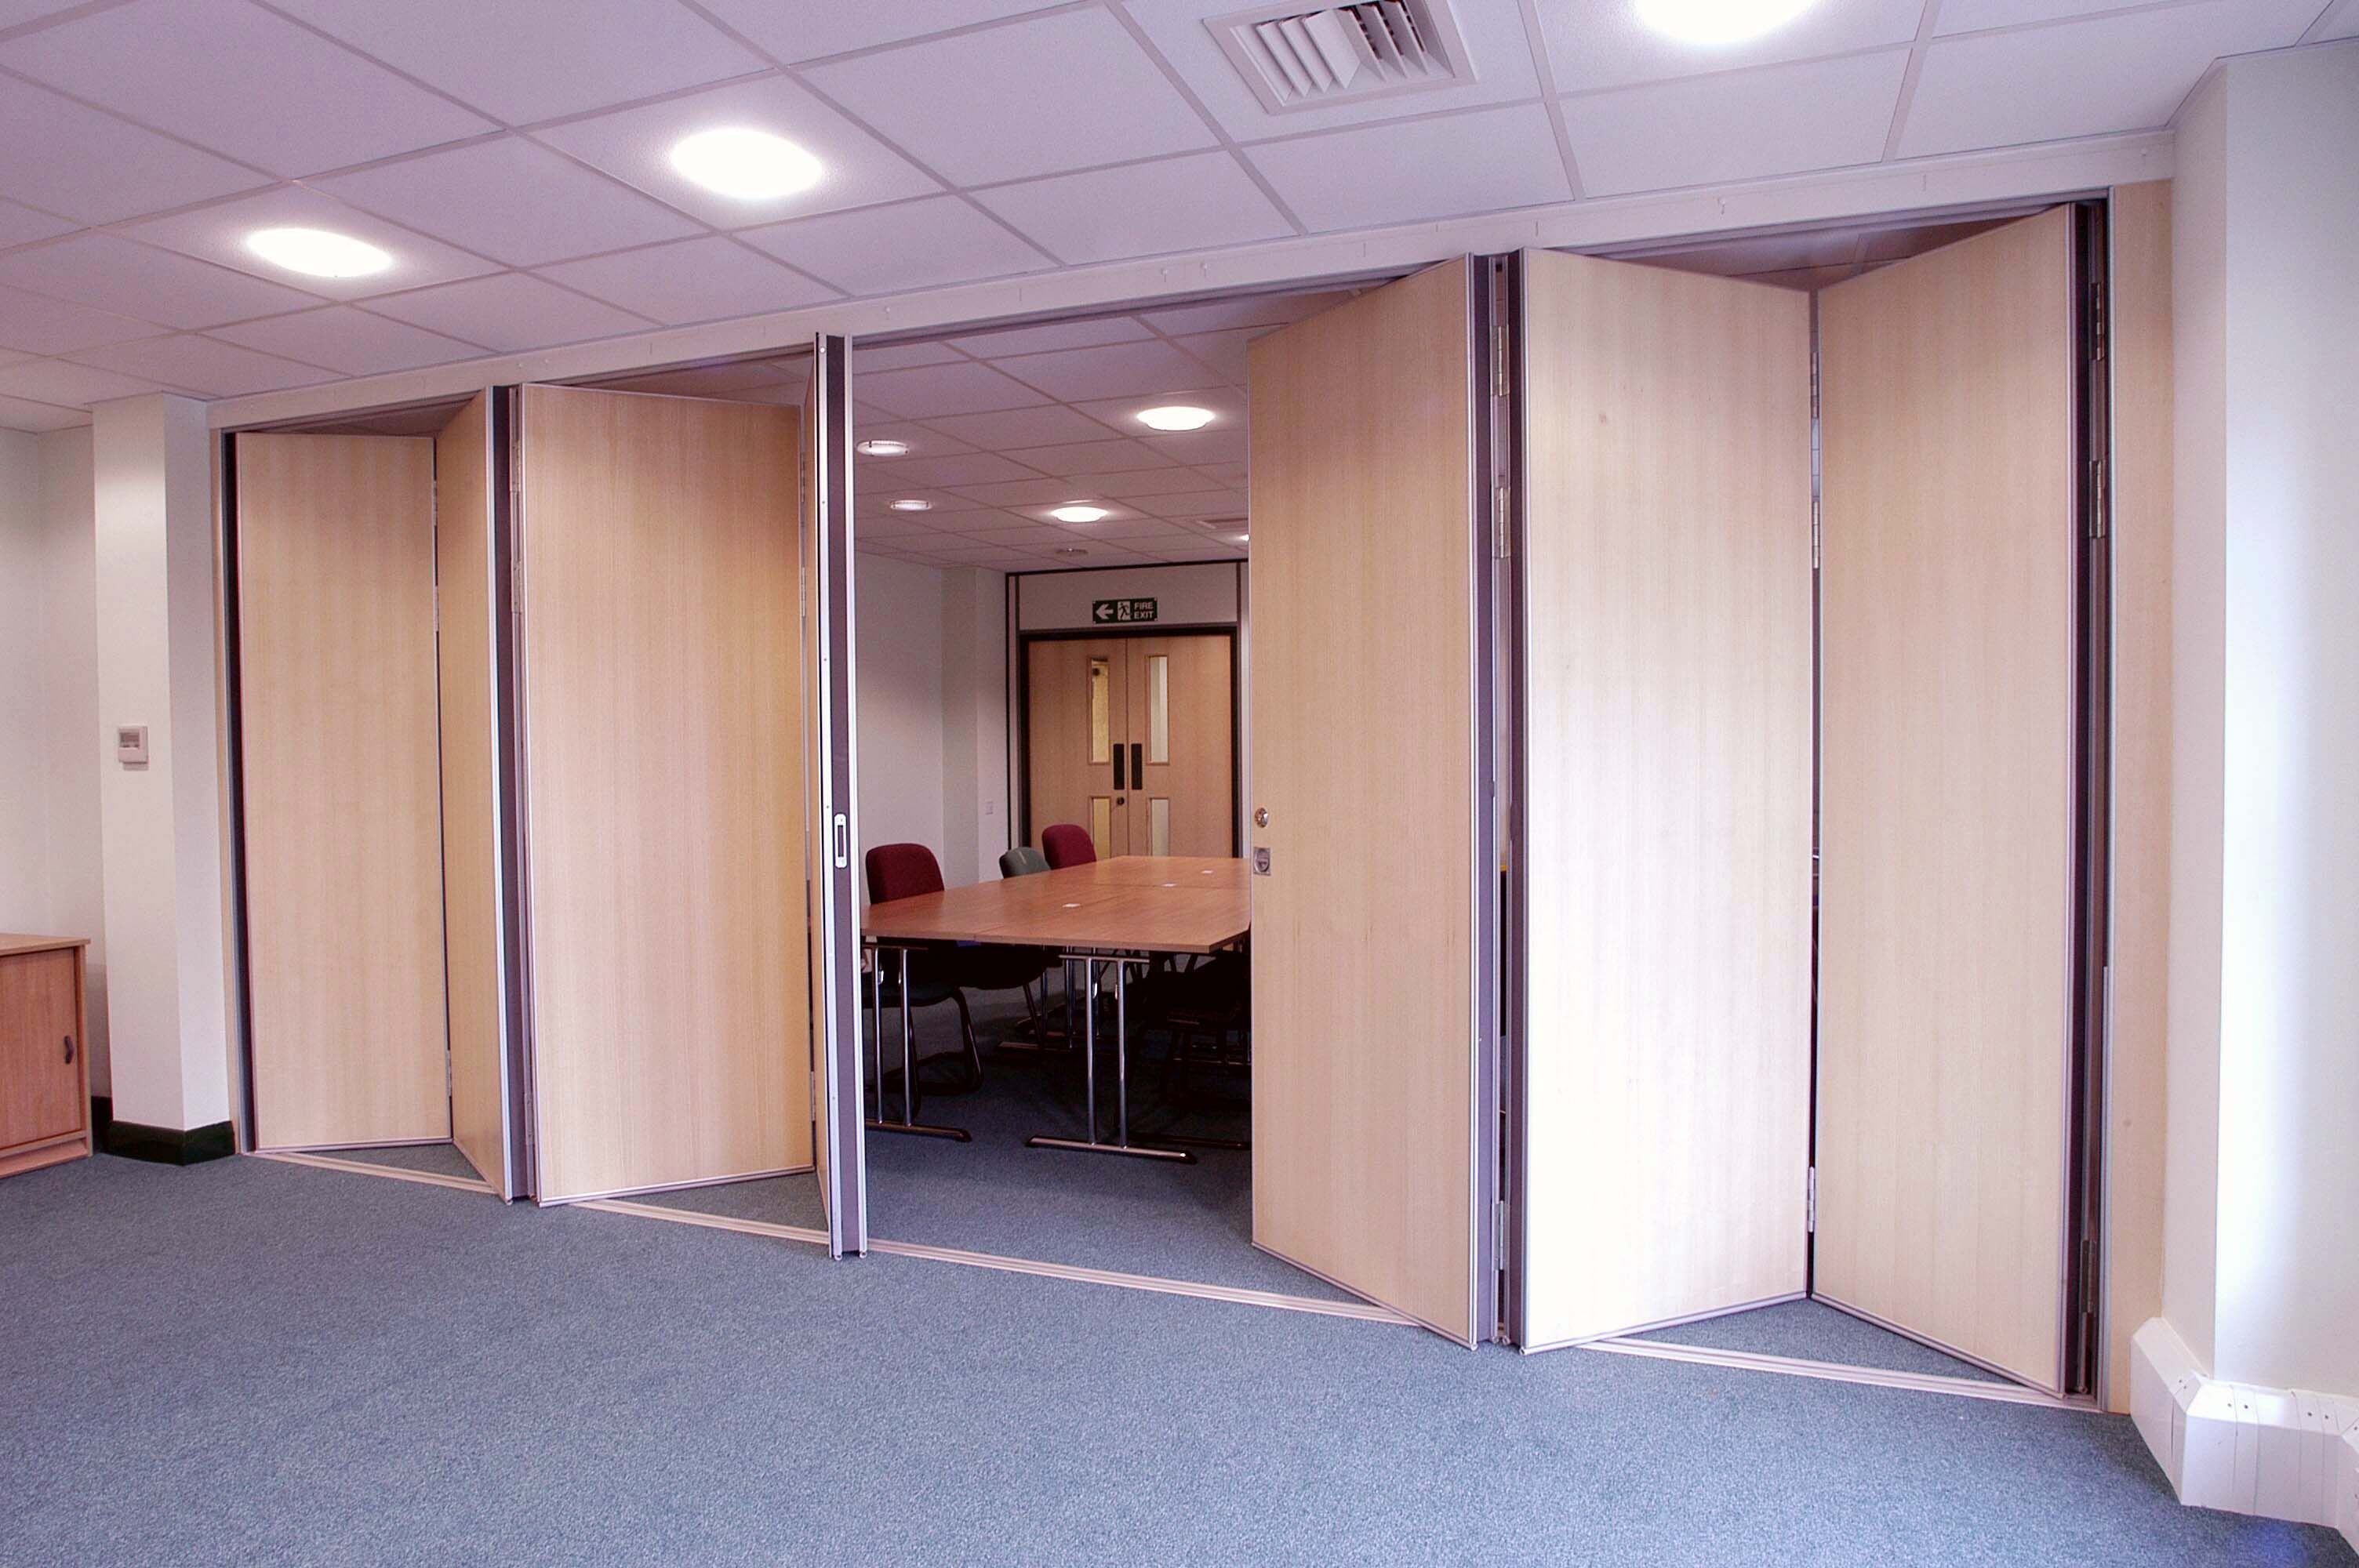 Frosted Glass Room Divider With Two Panels Connected By Beige Wall